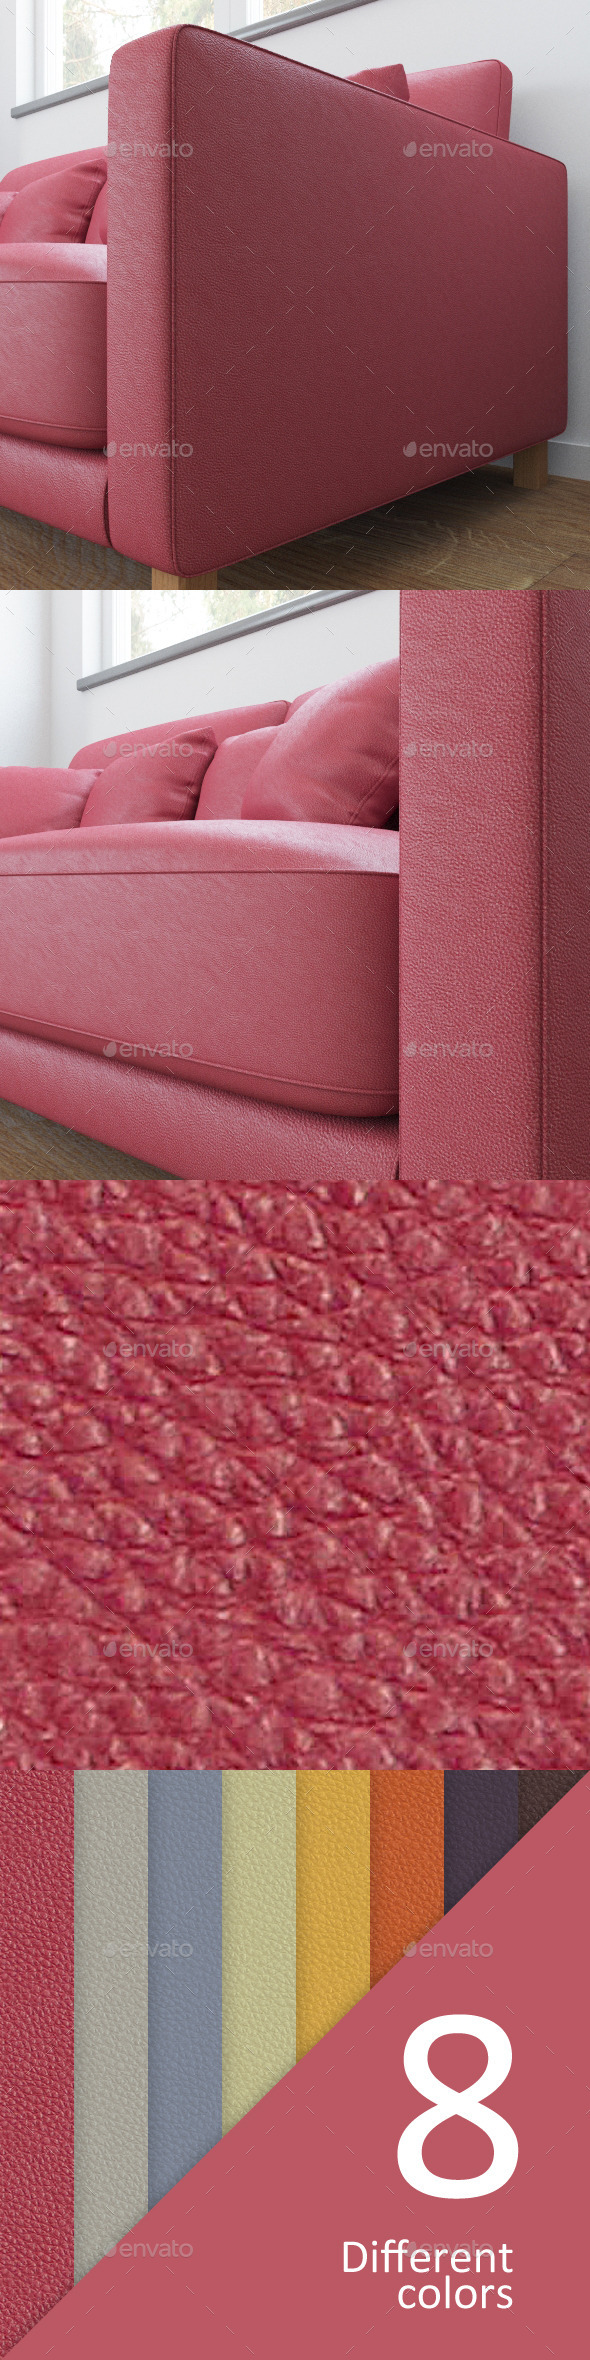 8 colors leather textures - 3DOcean Item for Sale